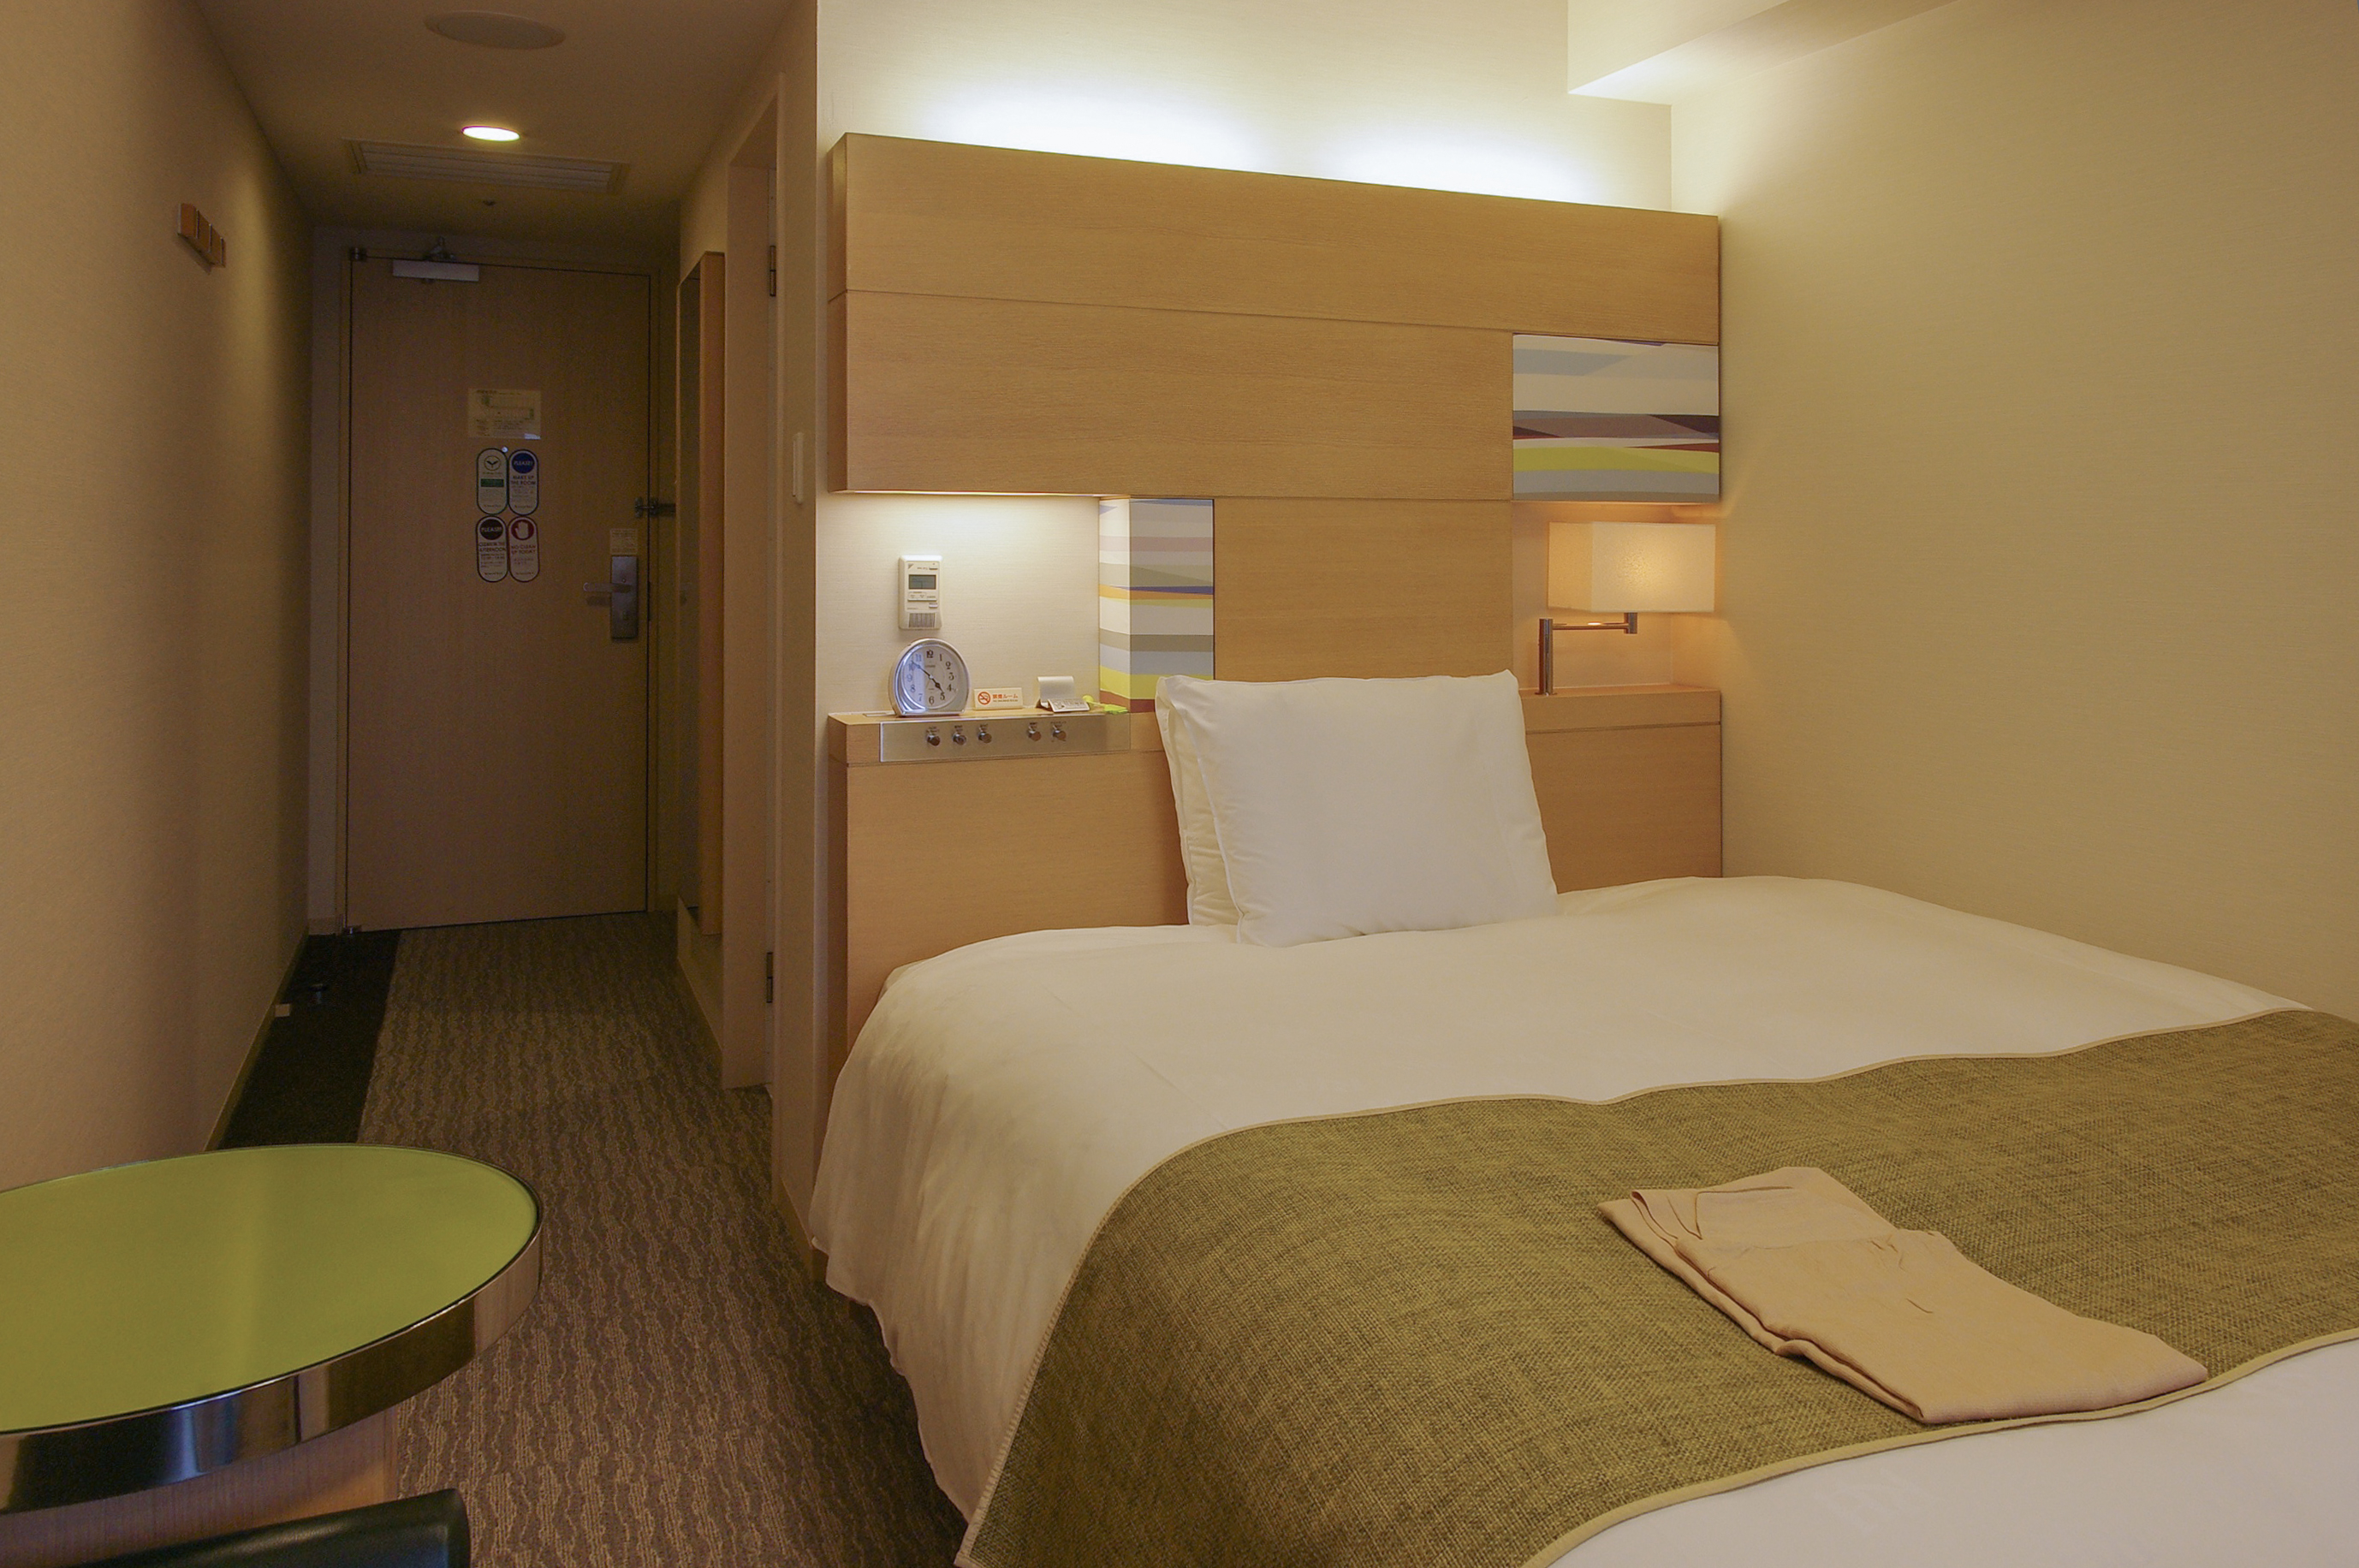 File:Richmond Hotel Premier Musashi Kosugi Single Bedroom 20100618 002